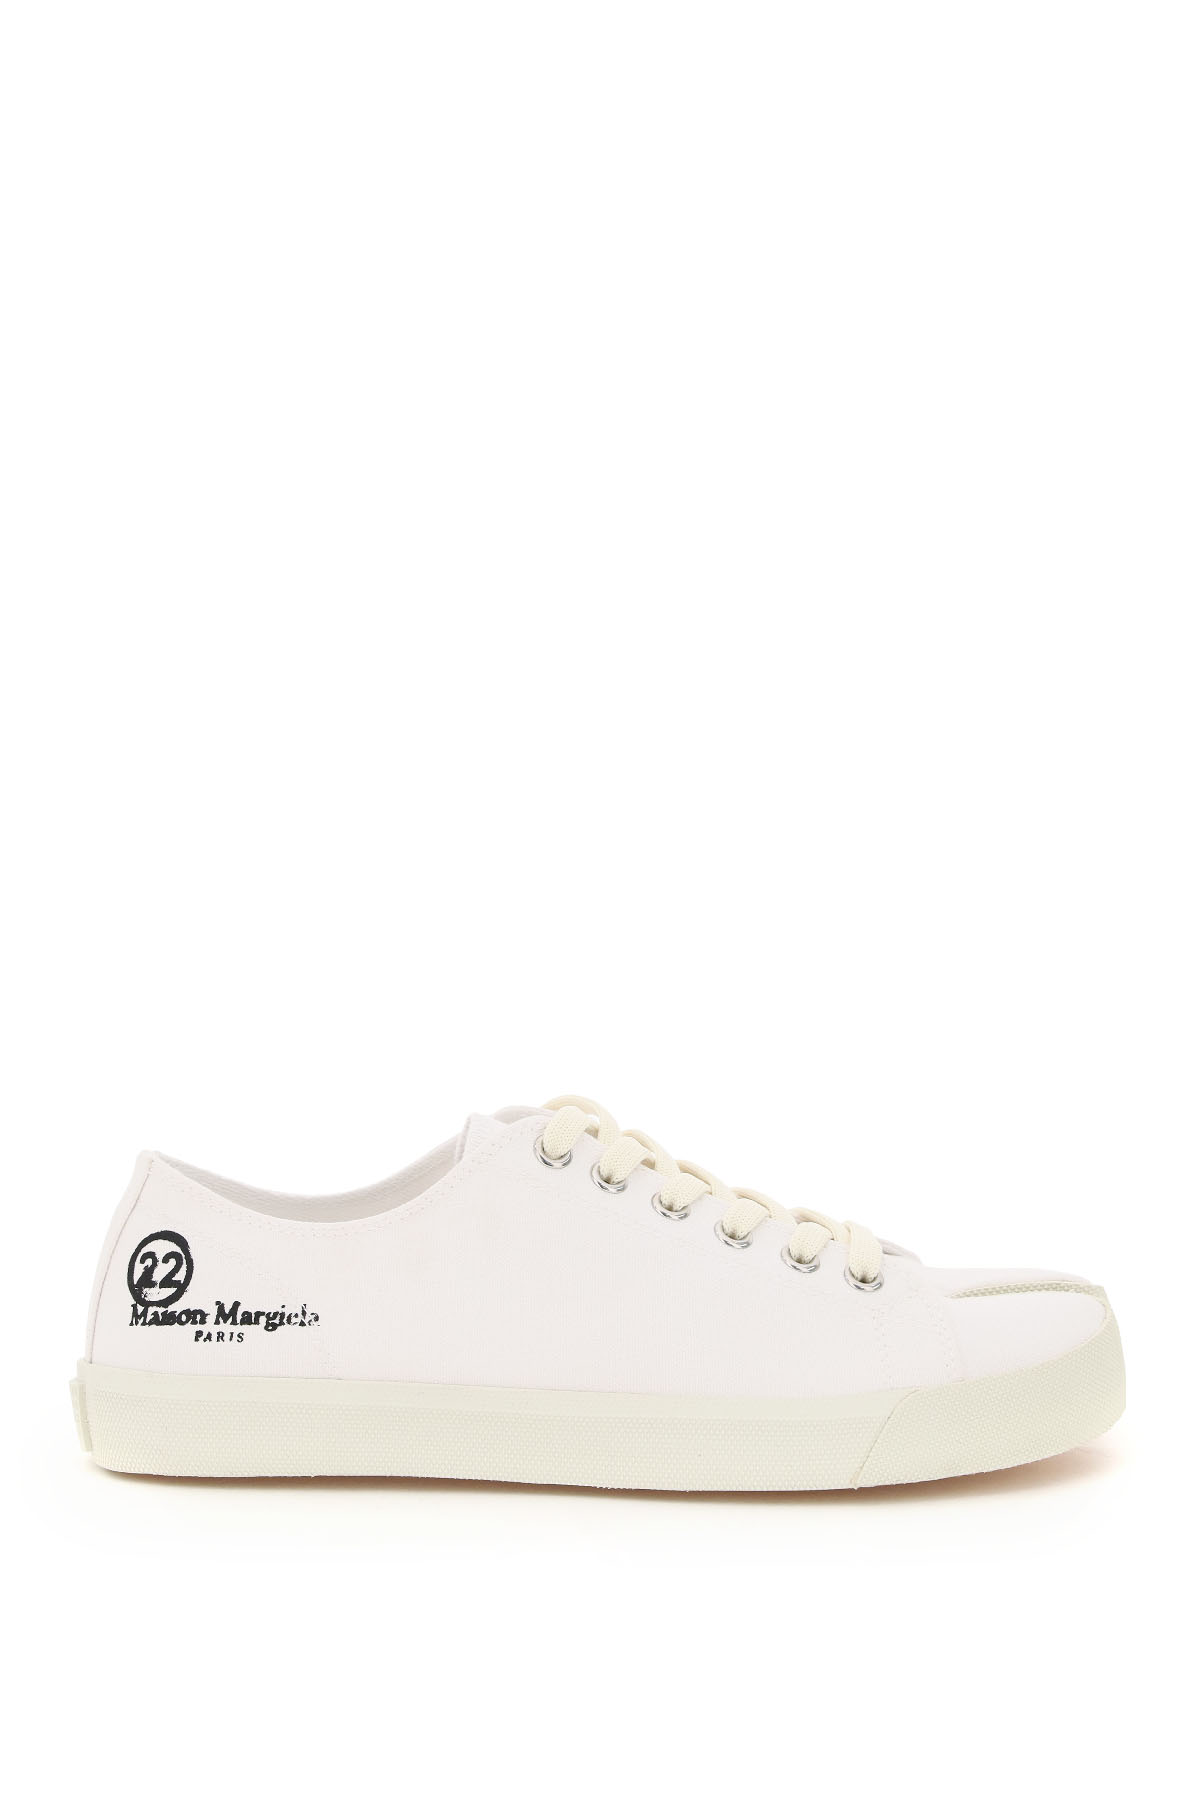 MAISON MARGIELA TABI CANVAS SNEAKERS 39 White Cotton